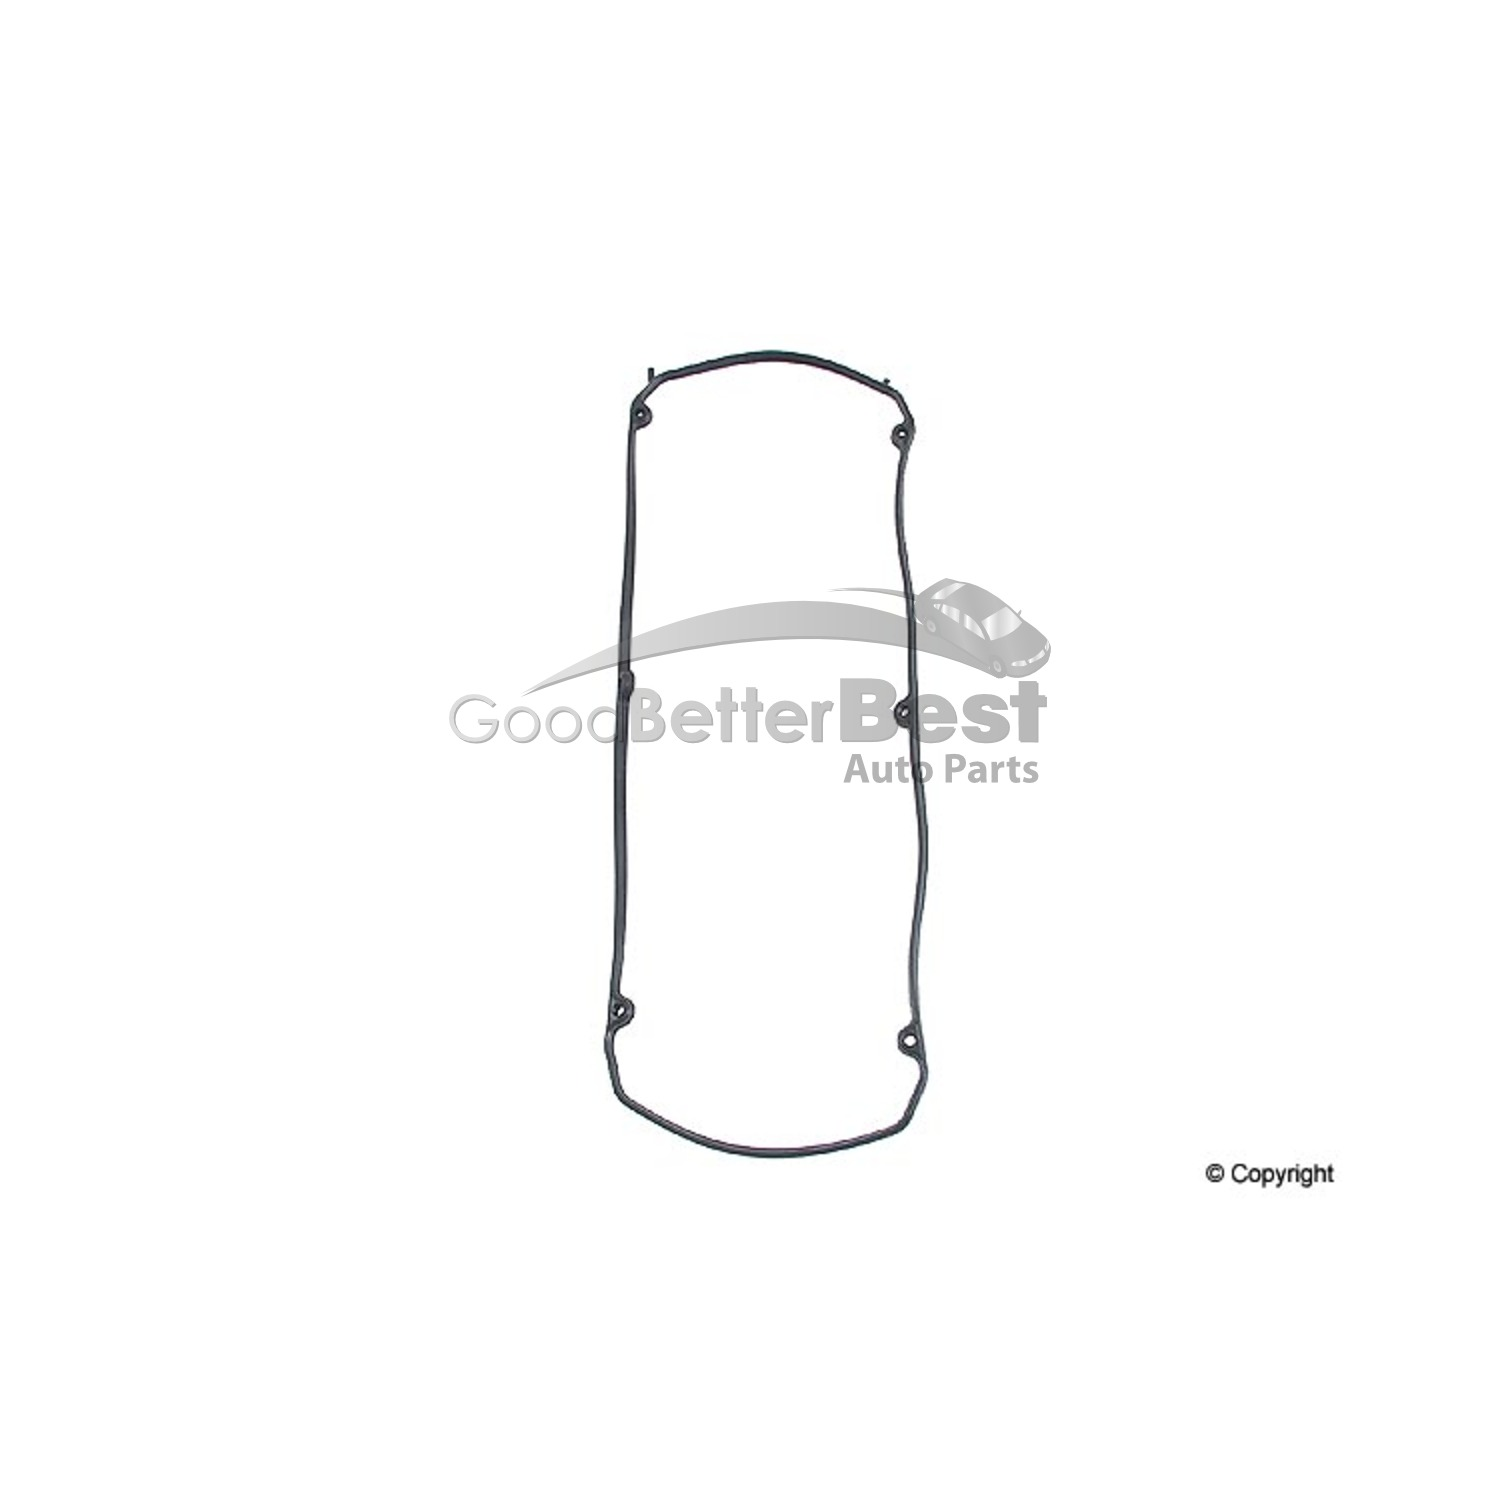 hight resolution of details about new stone engine valve cover gasket jc33086 mn137117 mitsubishi